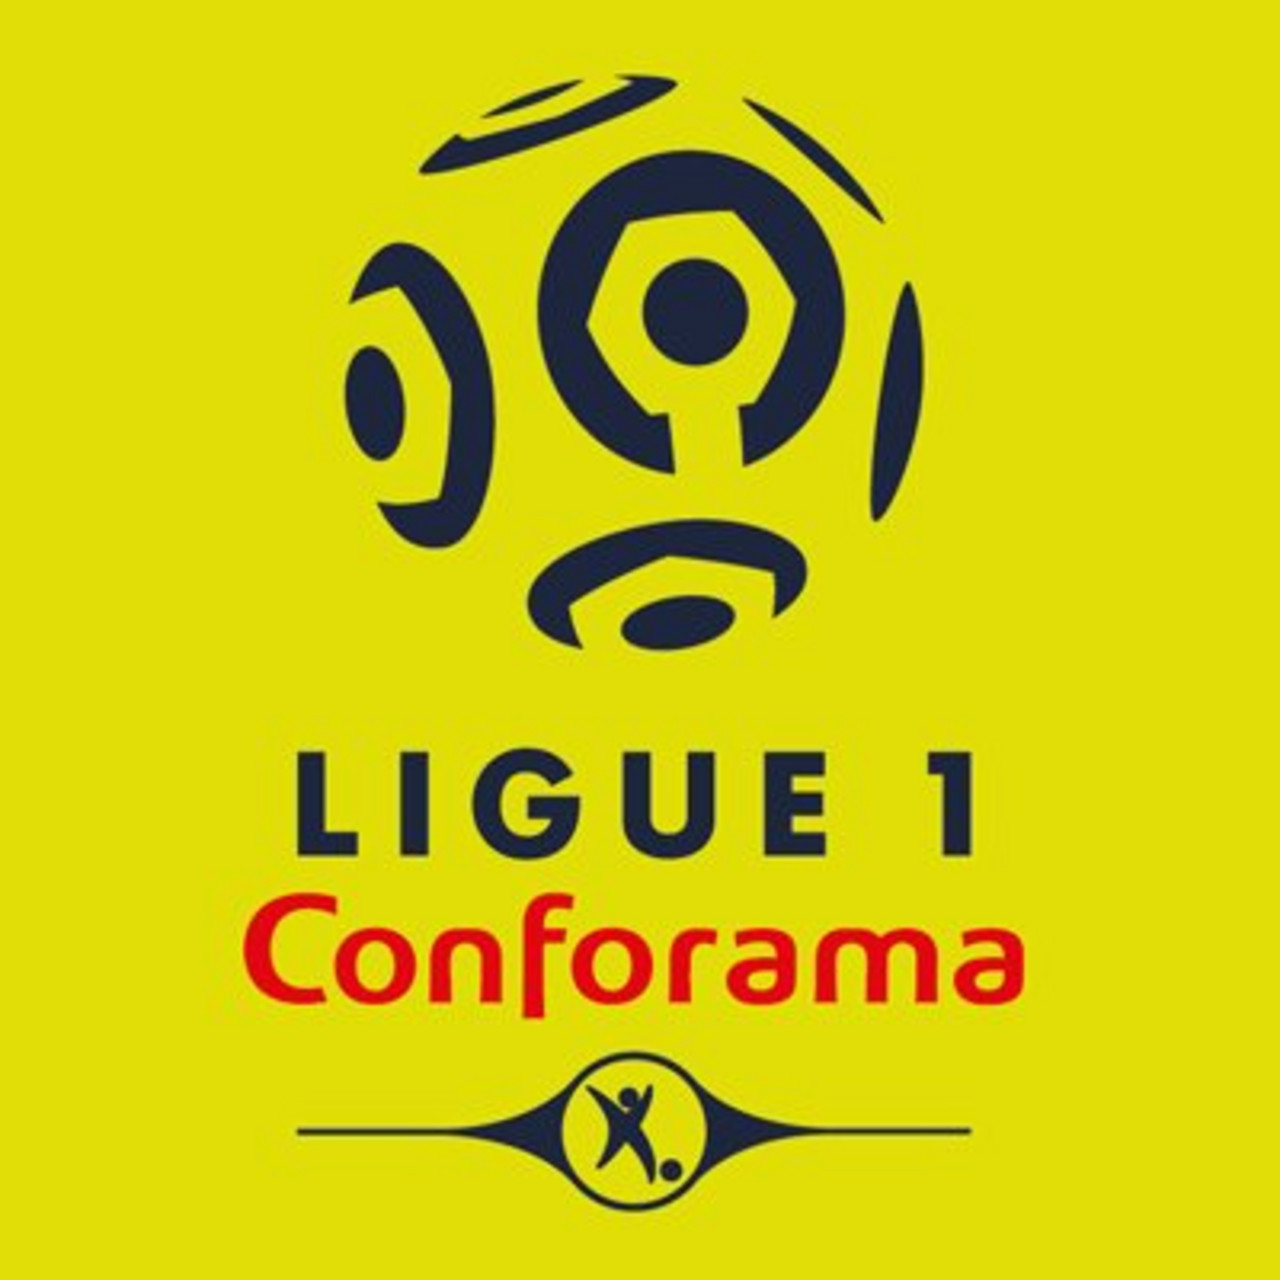 Ligue 1: poche le partite in programma